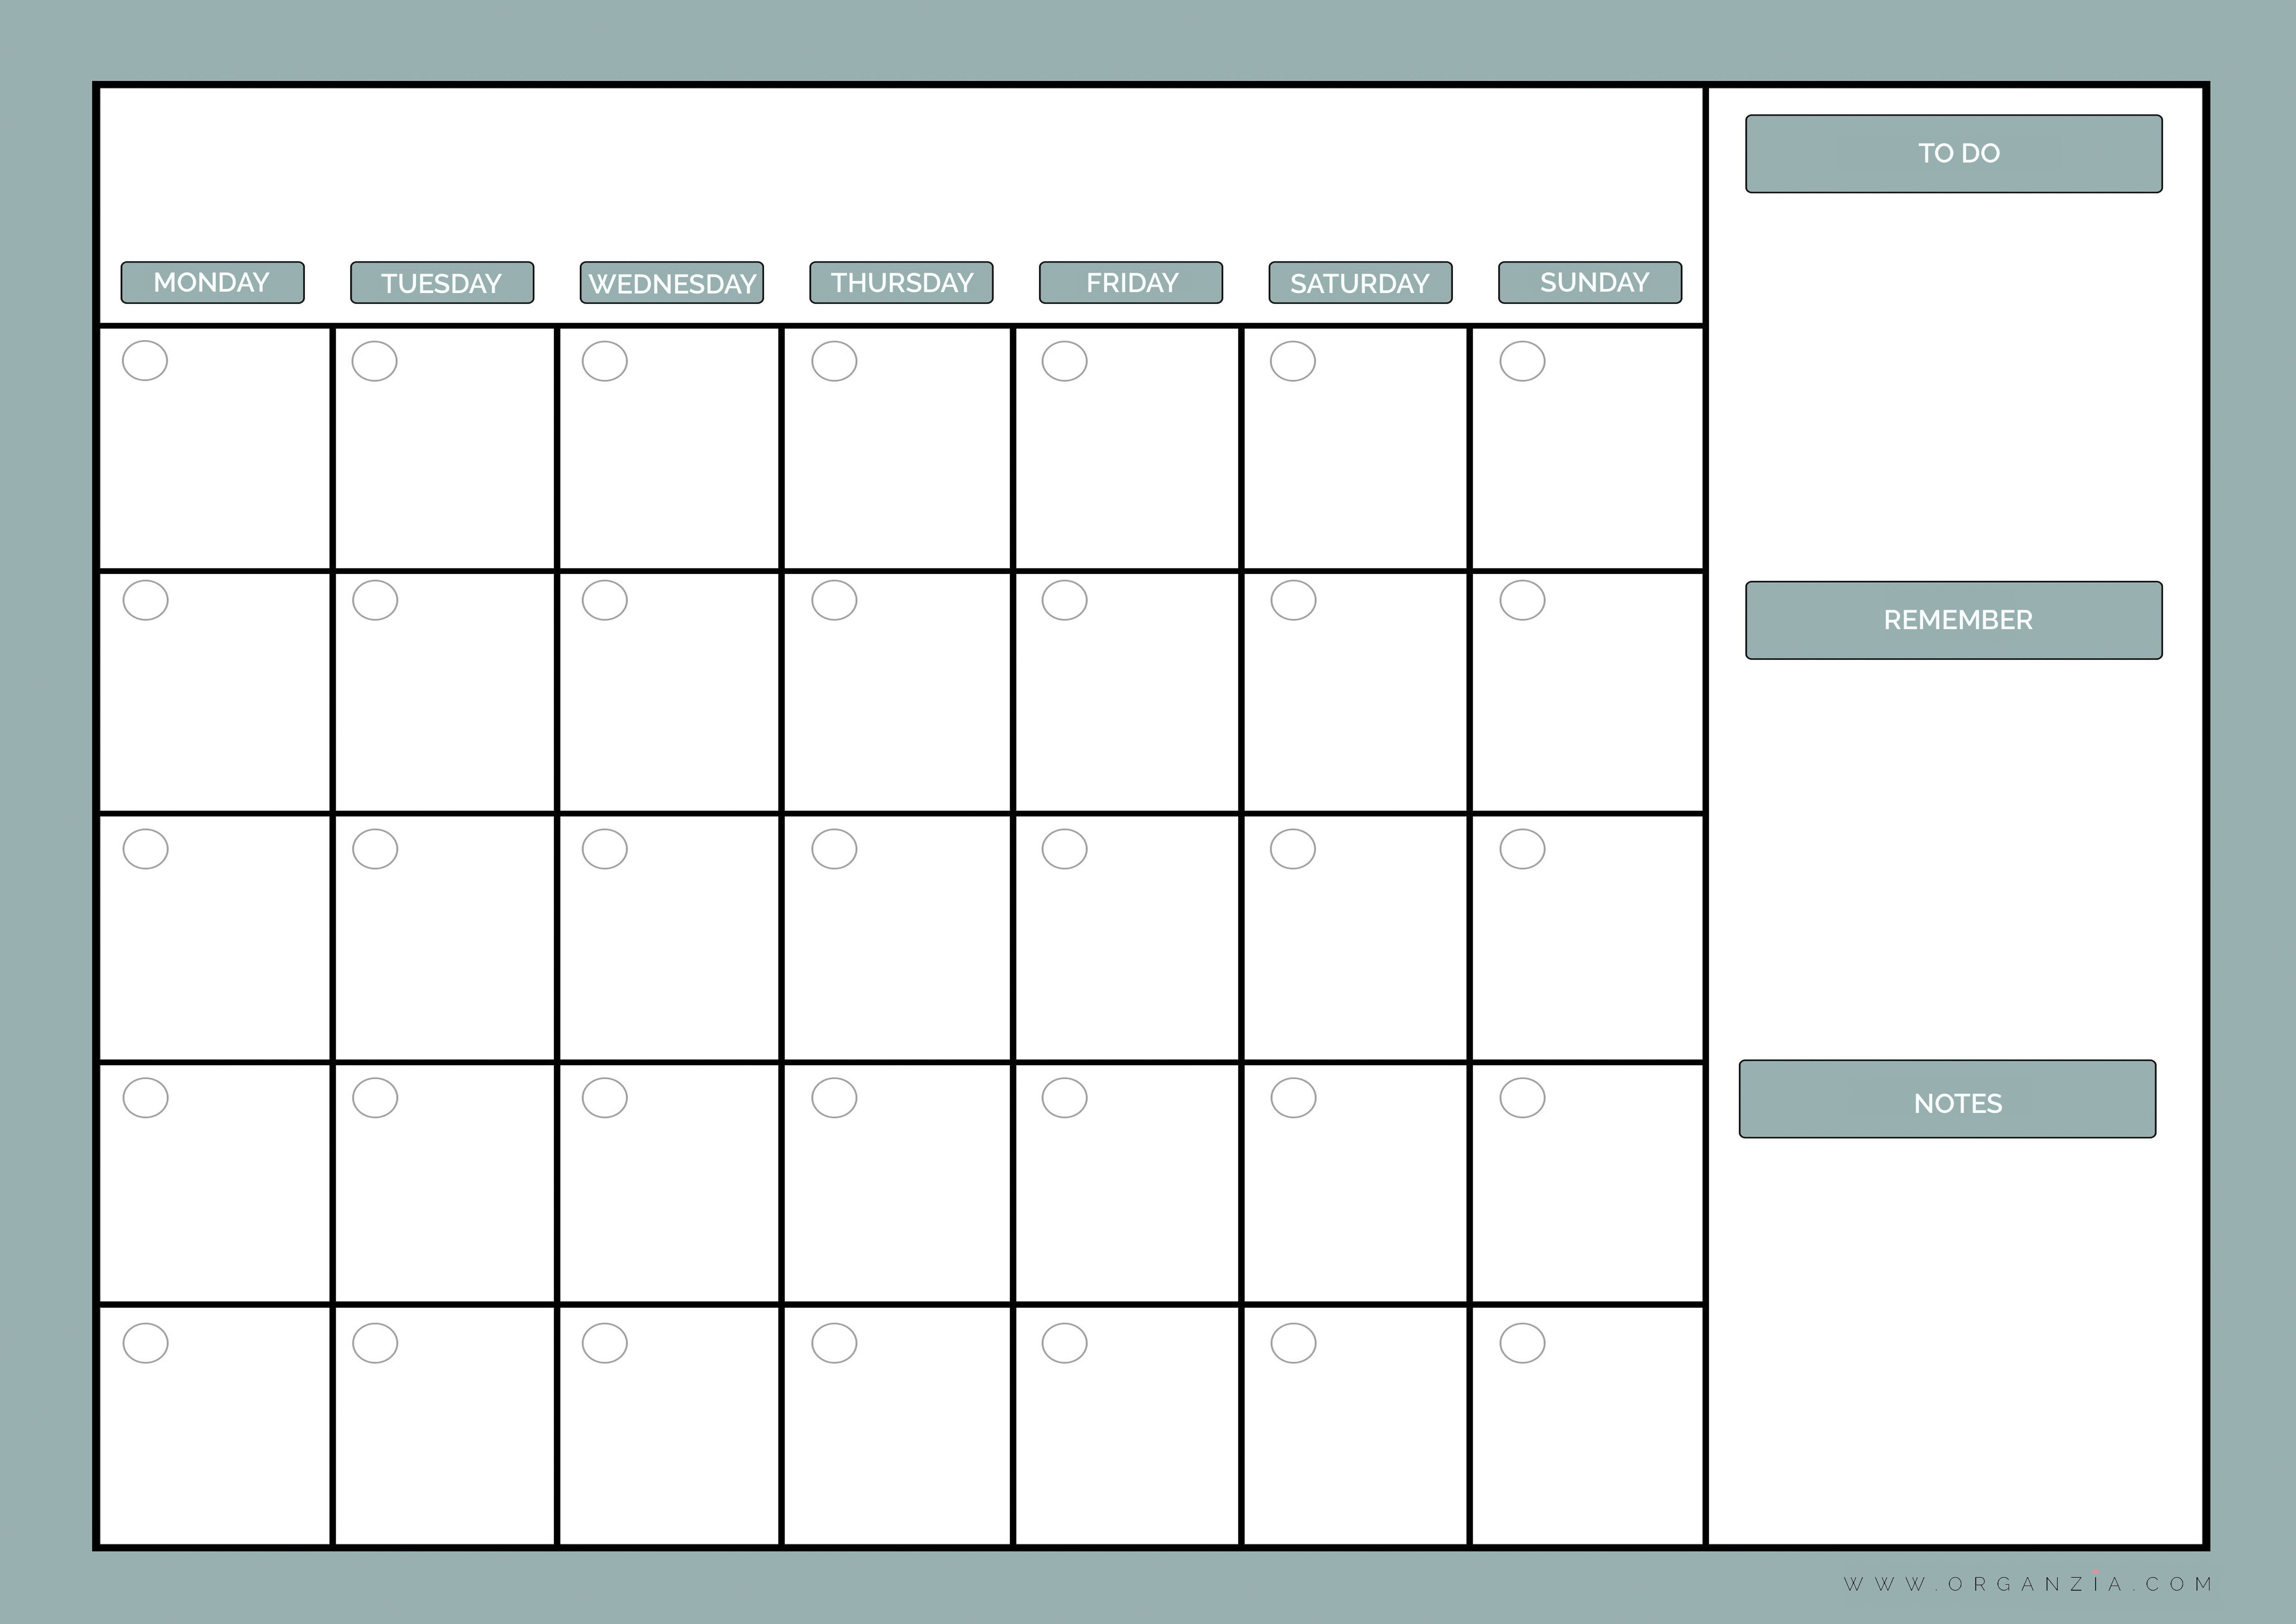 Gratifying image with regard to weekly planner printable